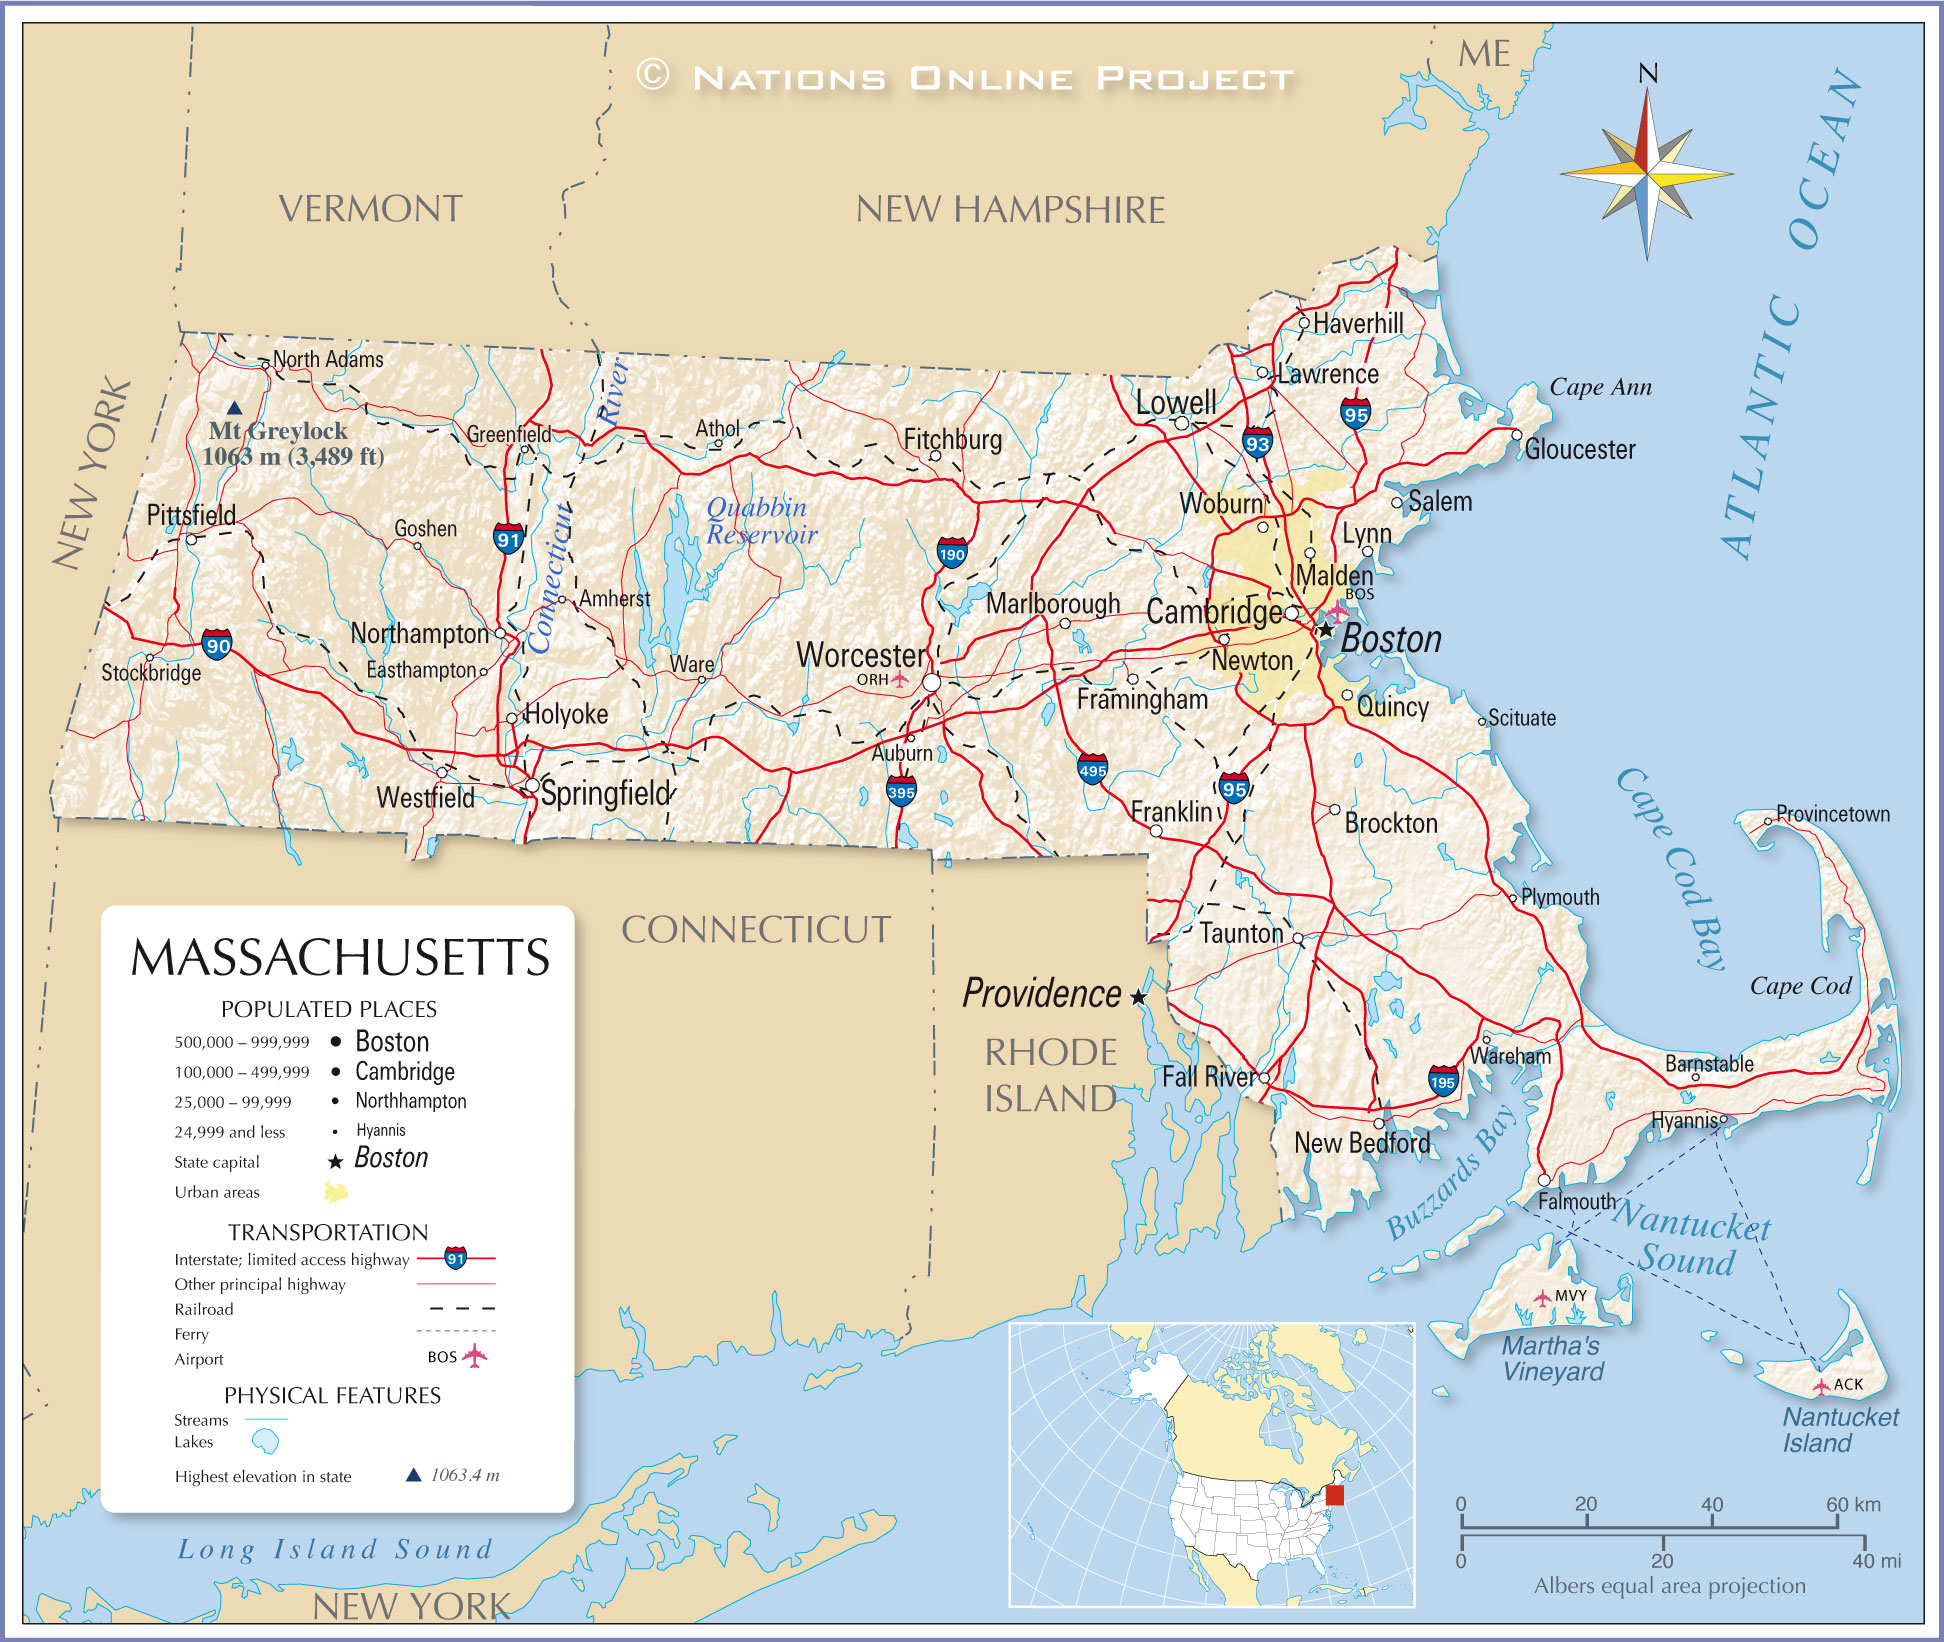 Reference Map Of Massachusetts USA Nations Online Project - Boston in usa map